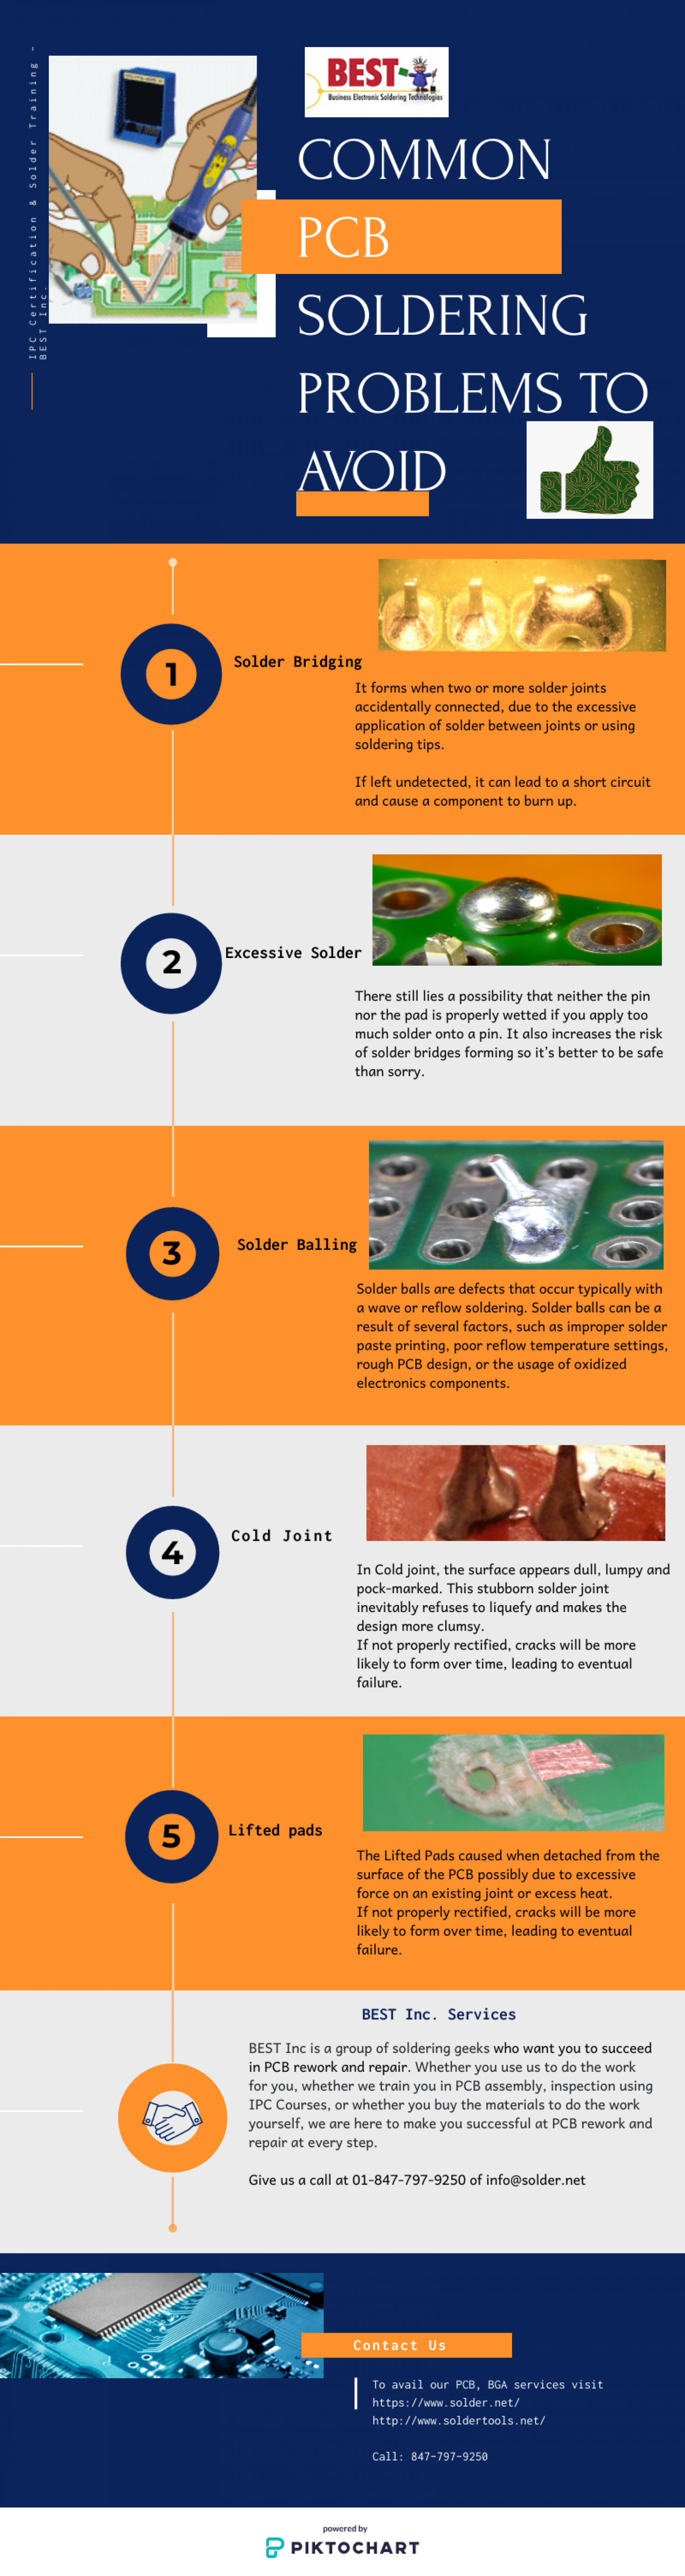 Some Common PCB Soldering Problems That We Can Avoid Infographic